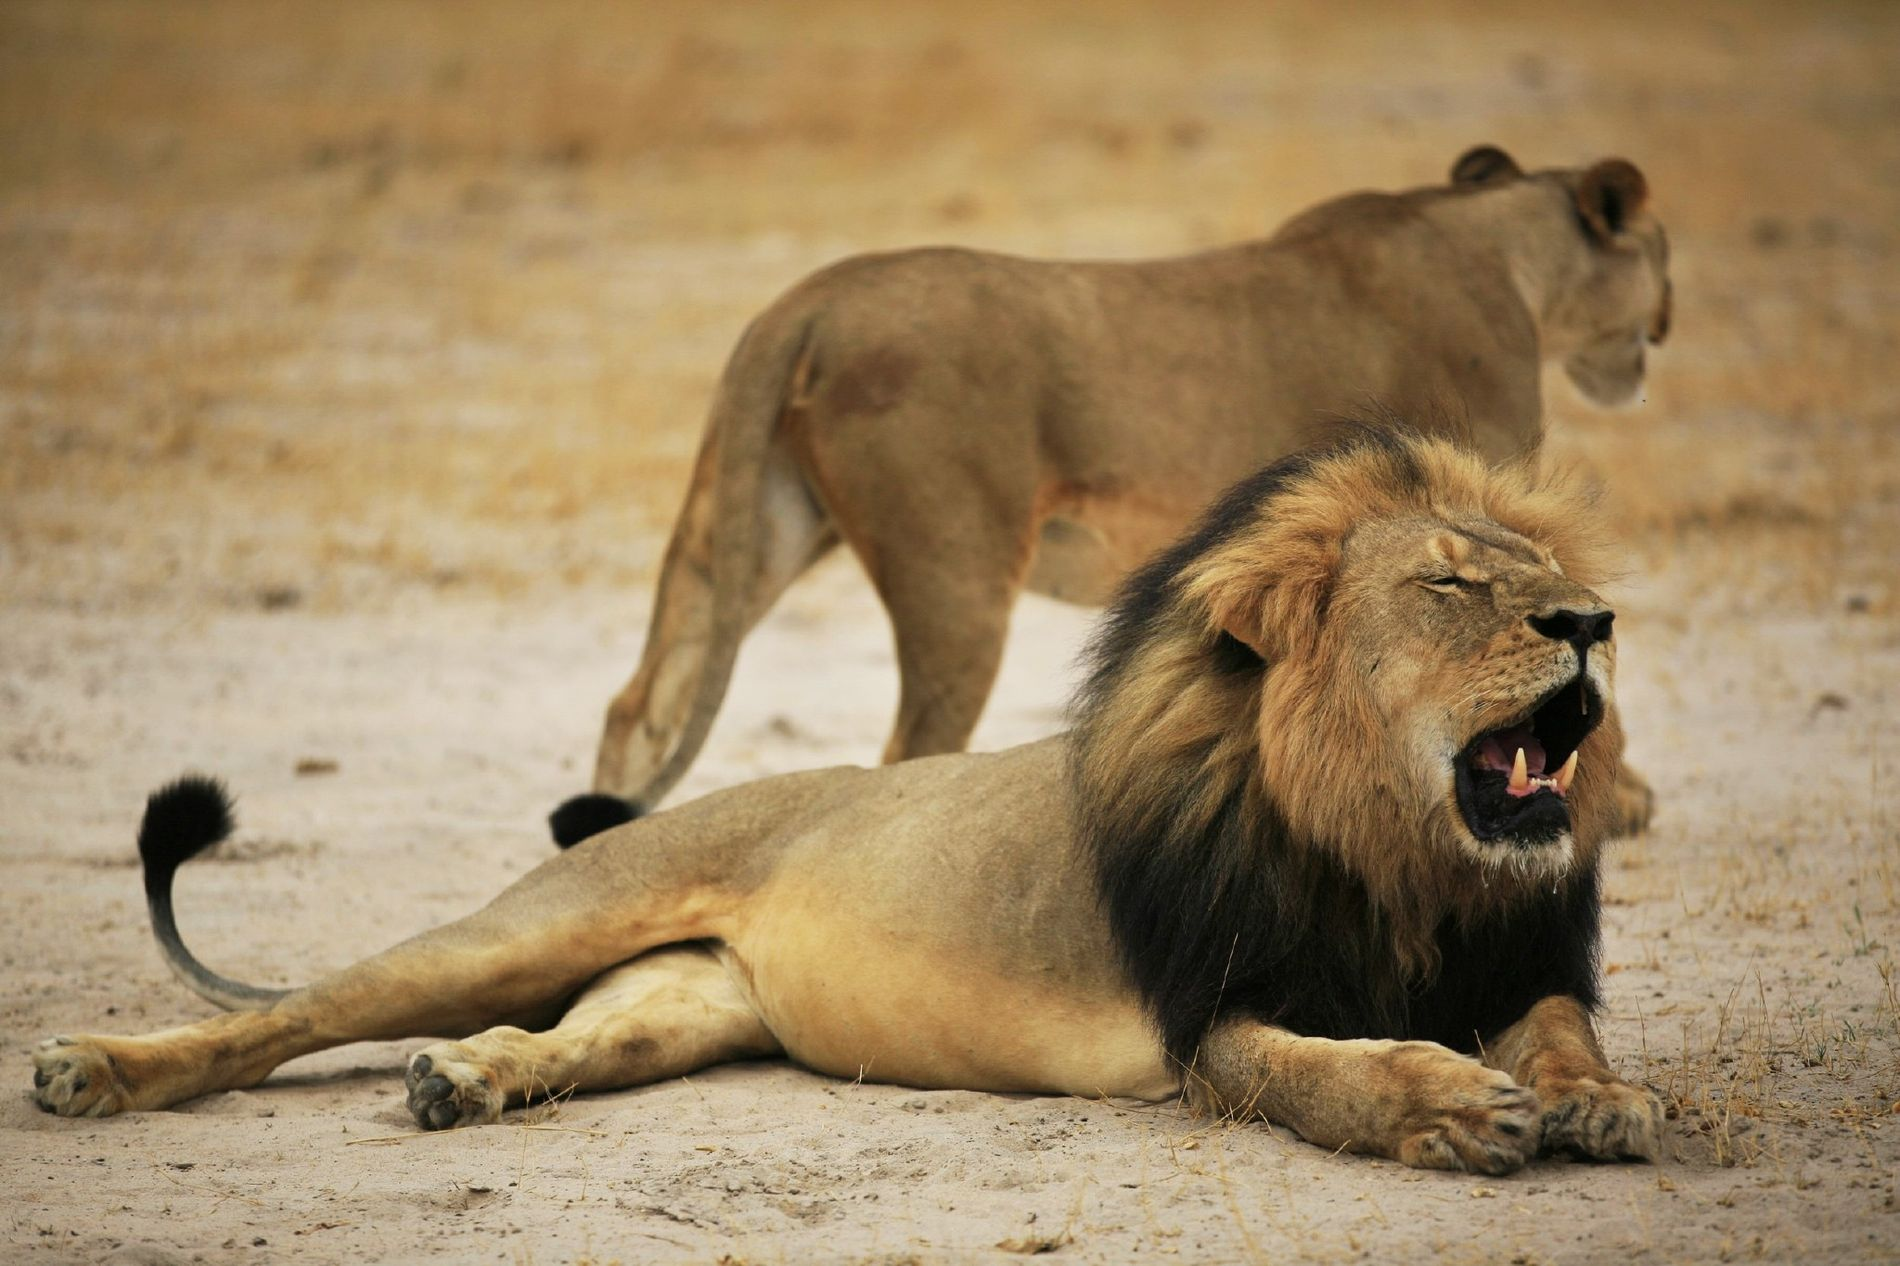 Cecil, a 13-year-old male lion who lived in Zimbabwe's Hwange National Park, was killed by a trophy hunter in July 2015.